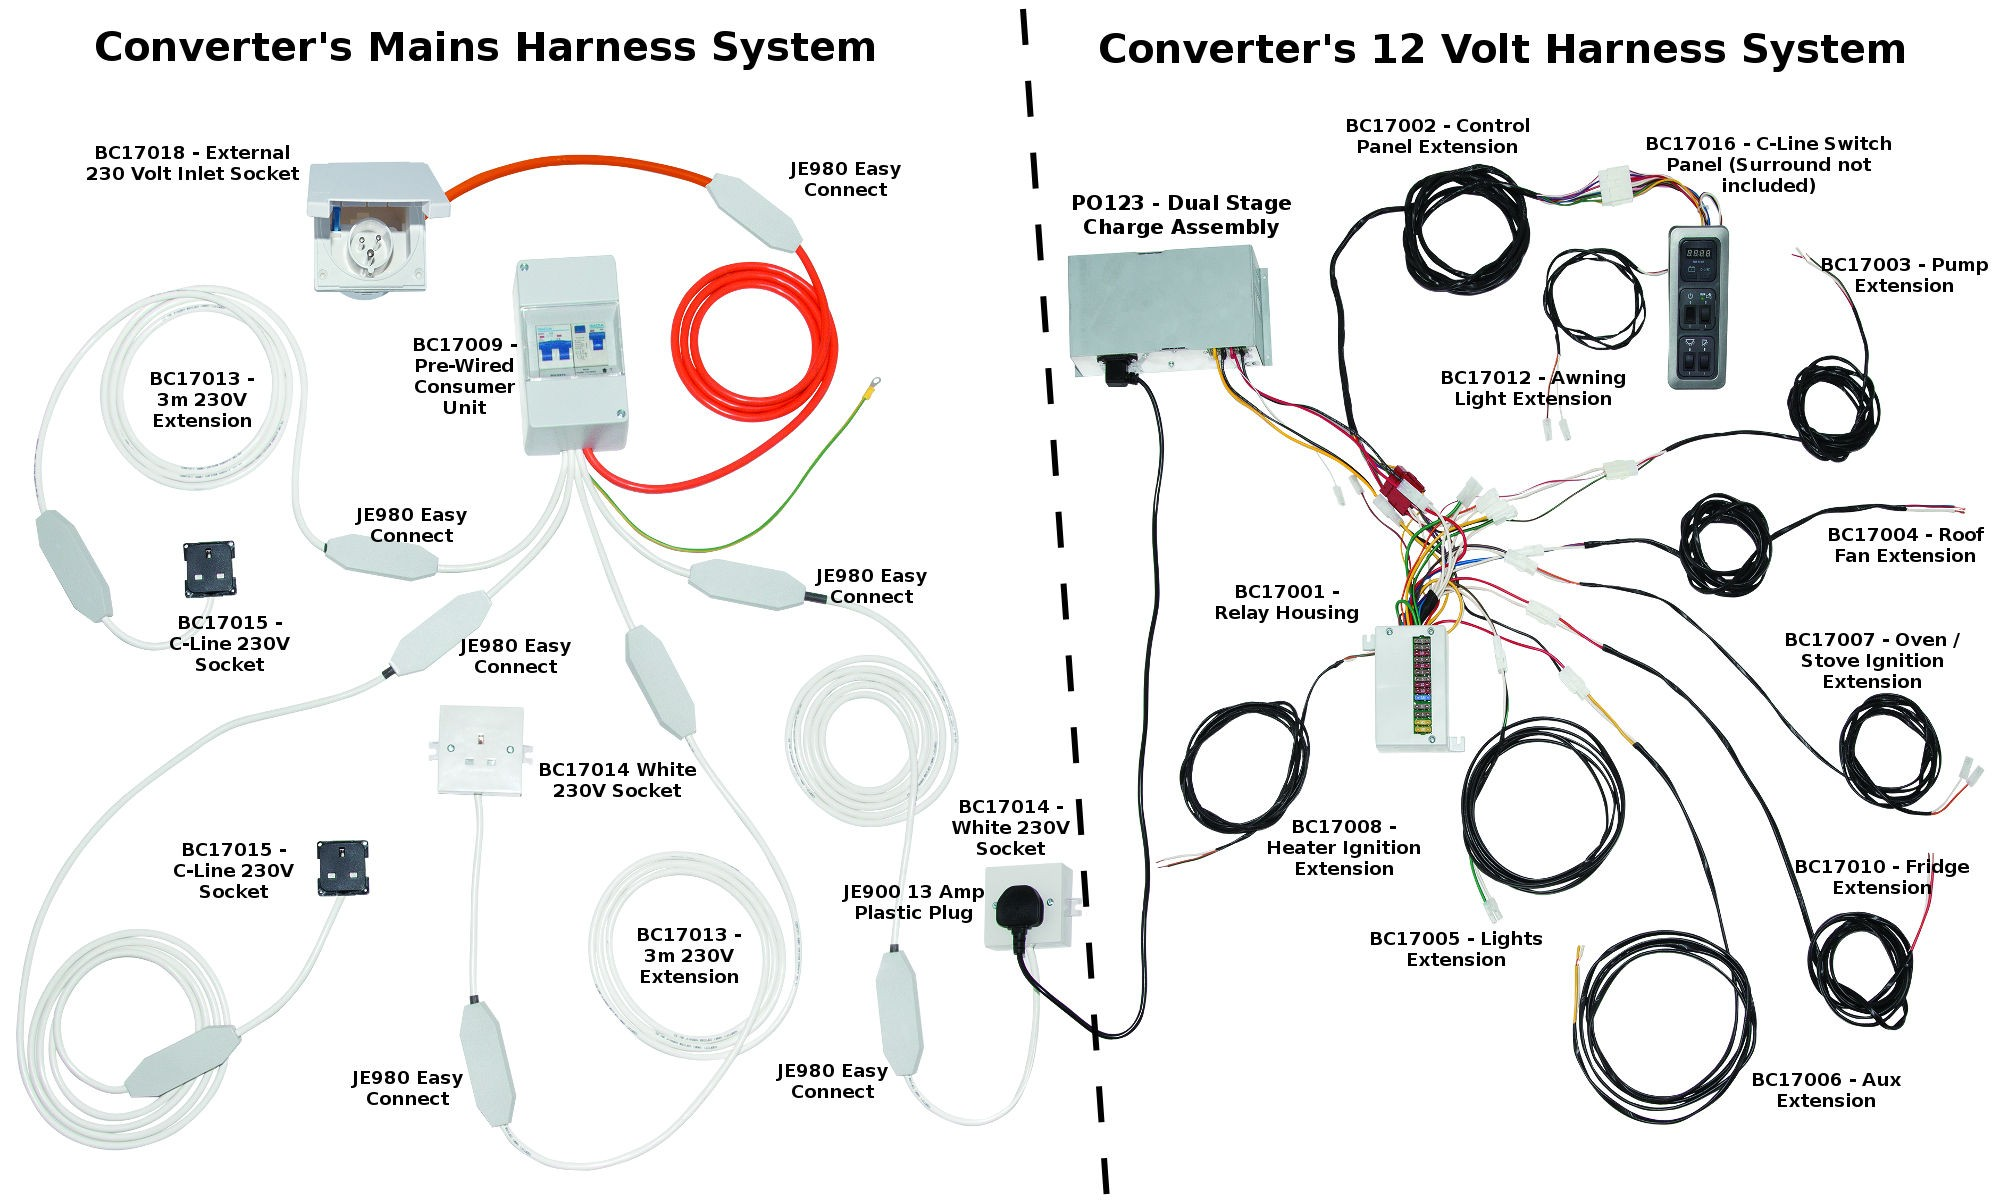 Van Converters Wiring System 12v 240 Volt Harness All The Major Components Of Electrical Are Pre Wired With Plug And Play Connectors Making It Far Simpler To Build Install